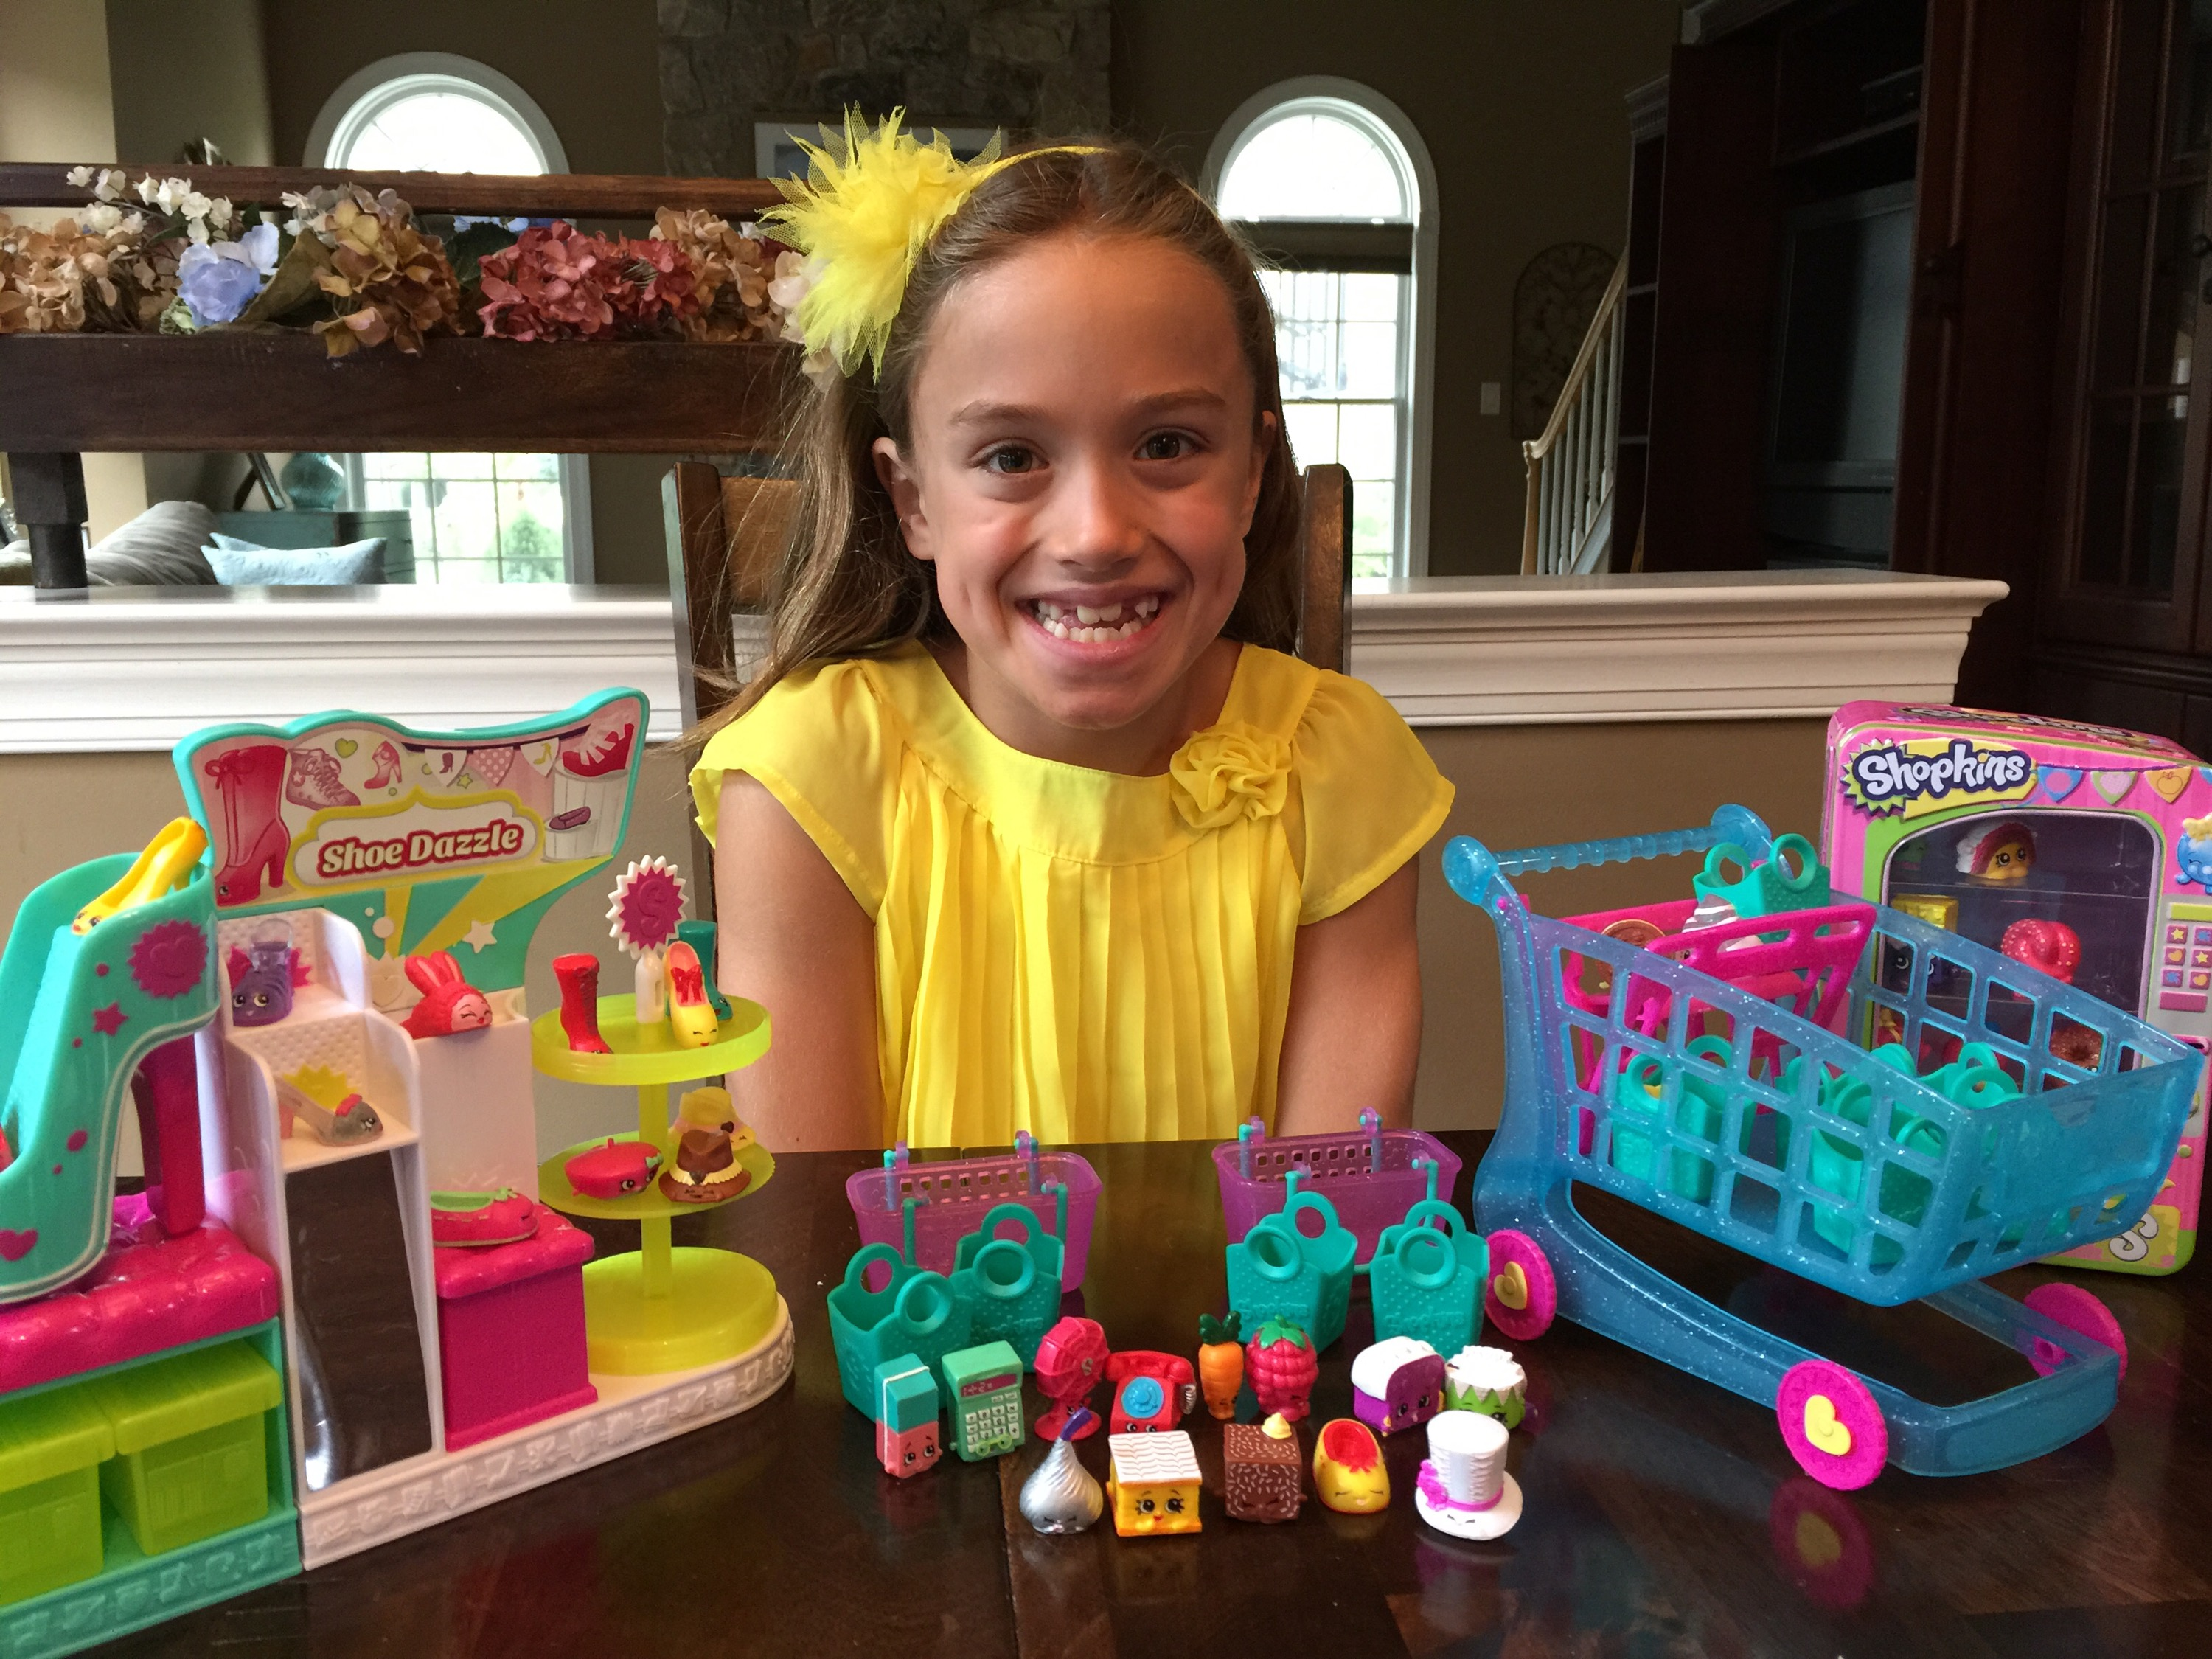 shopkins season 3 haul video and photos chocolate frosted fashion spree playset shopping cart and more classy mommy classy mommy